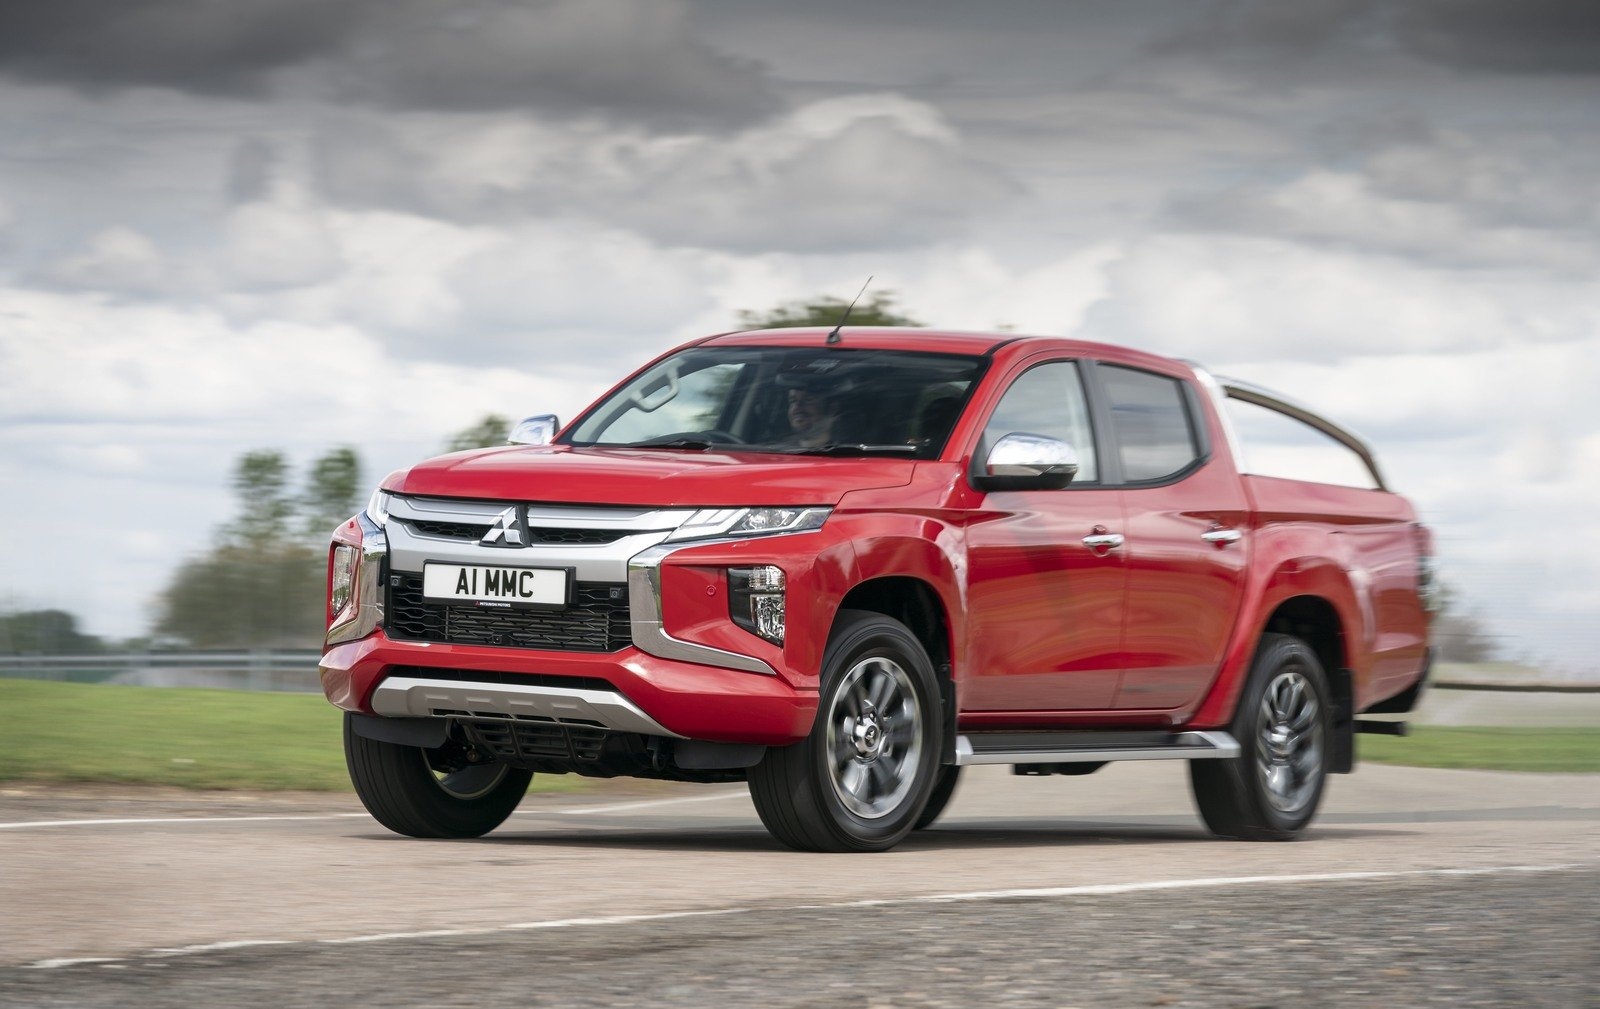 2019 Mitsubishi L200 Series 6 Pictures Photos Wallpapers